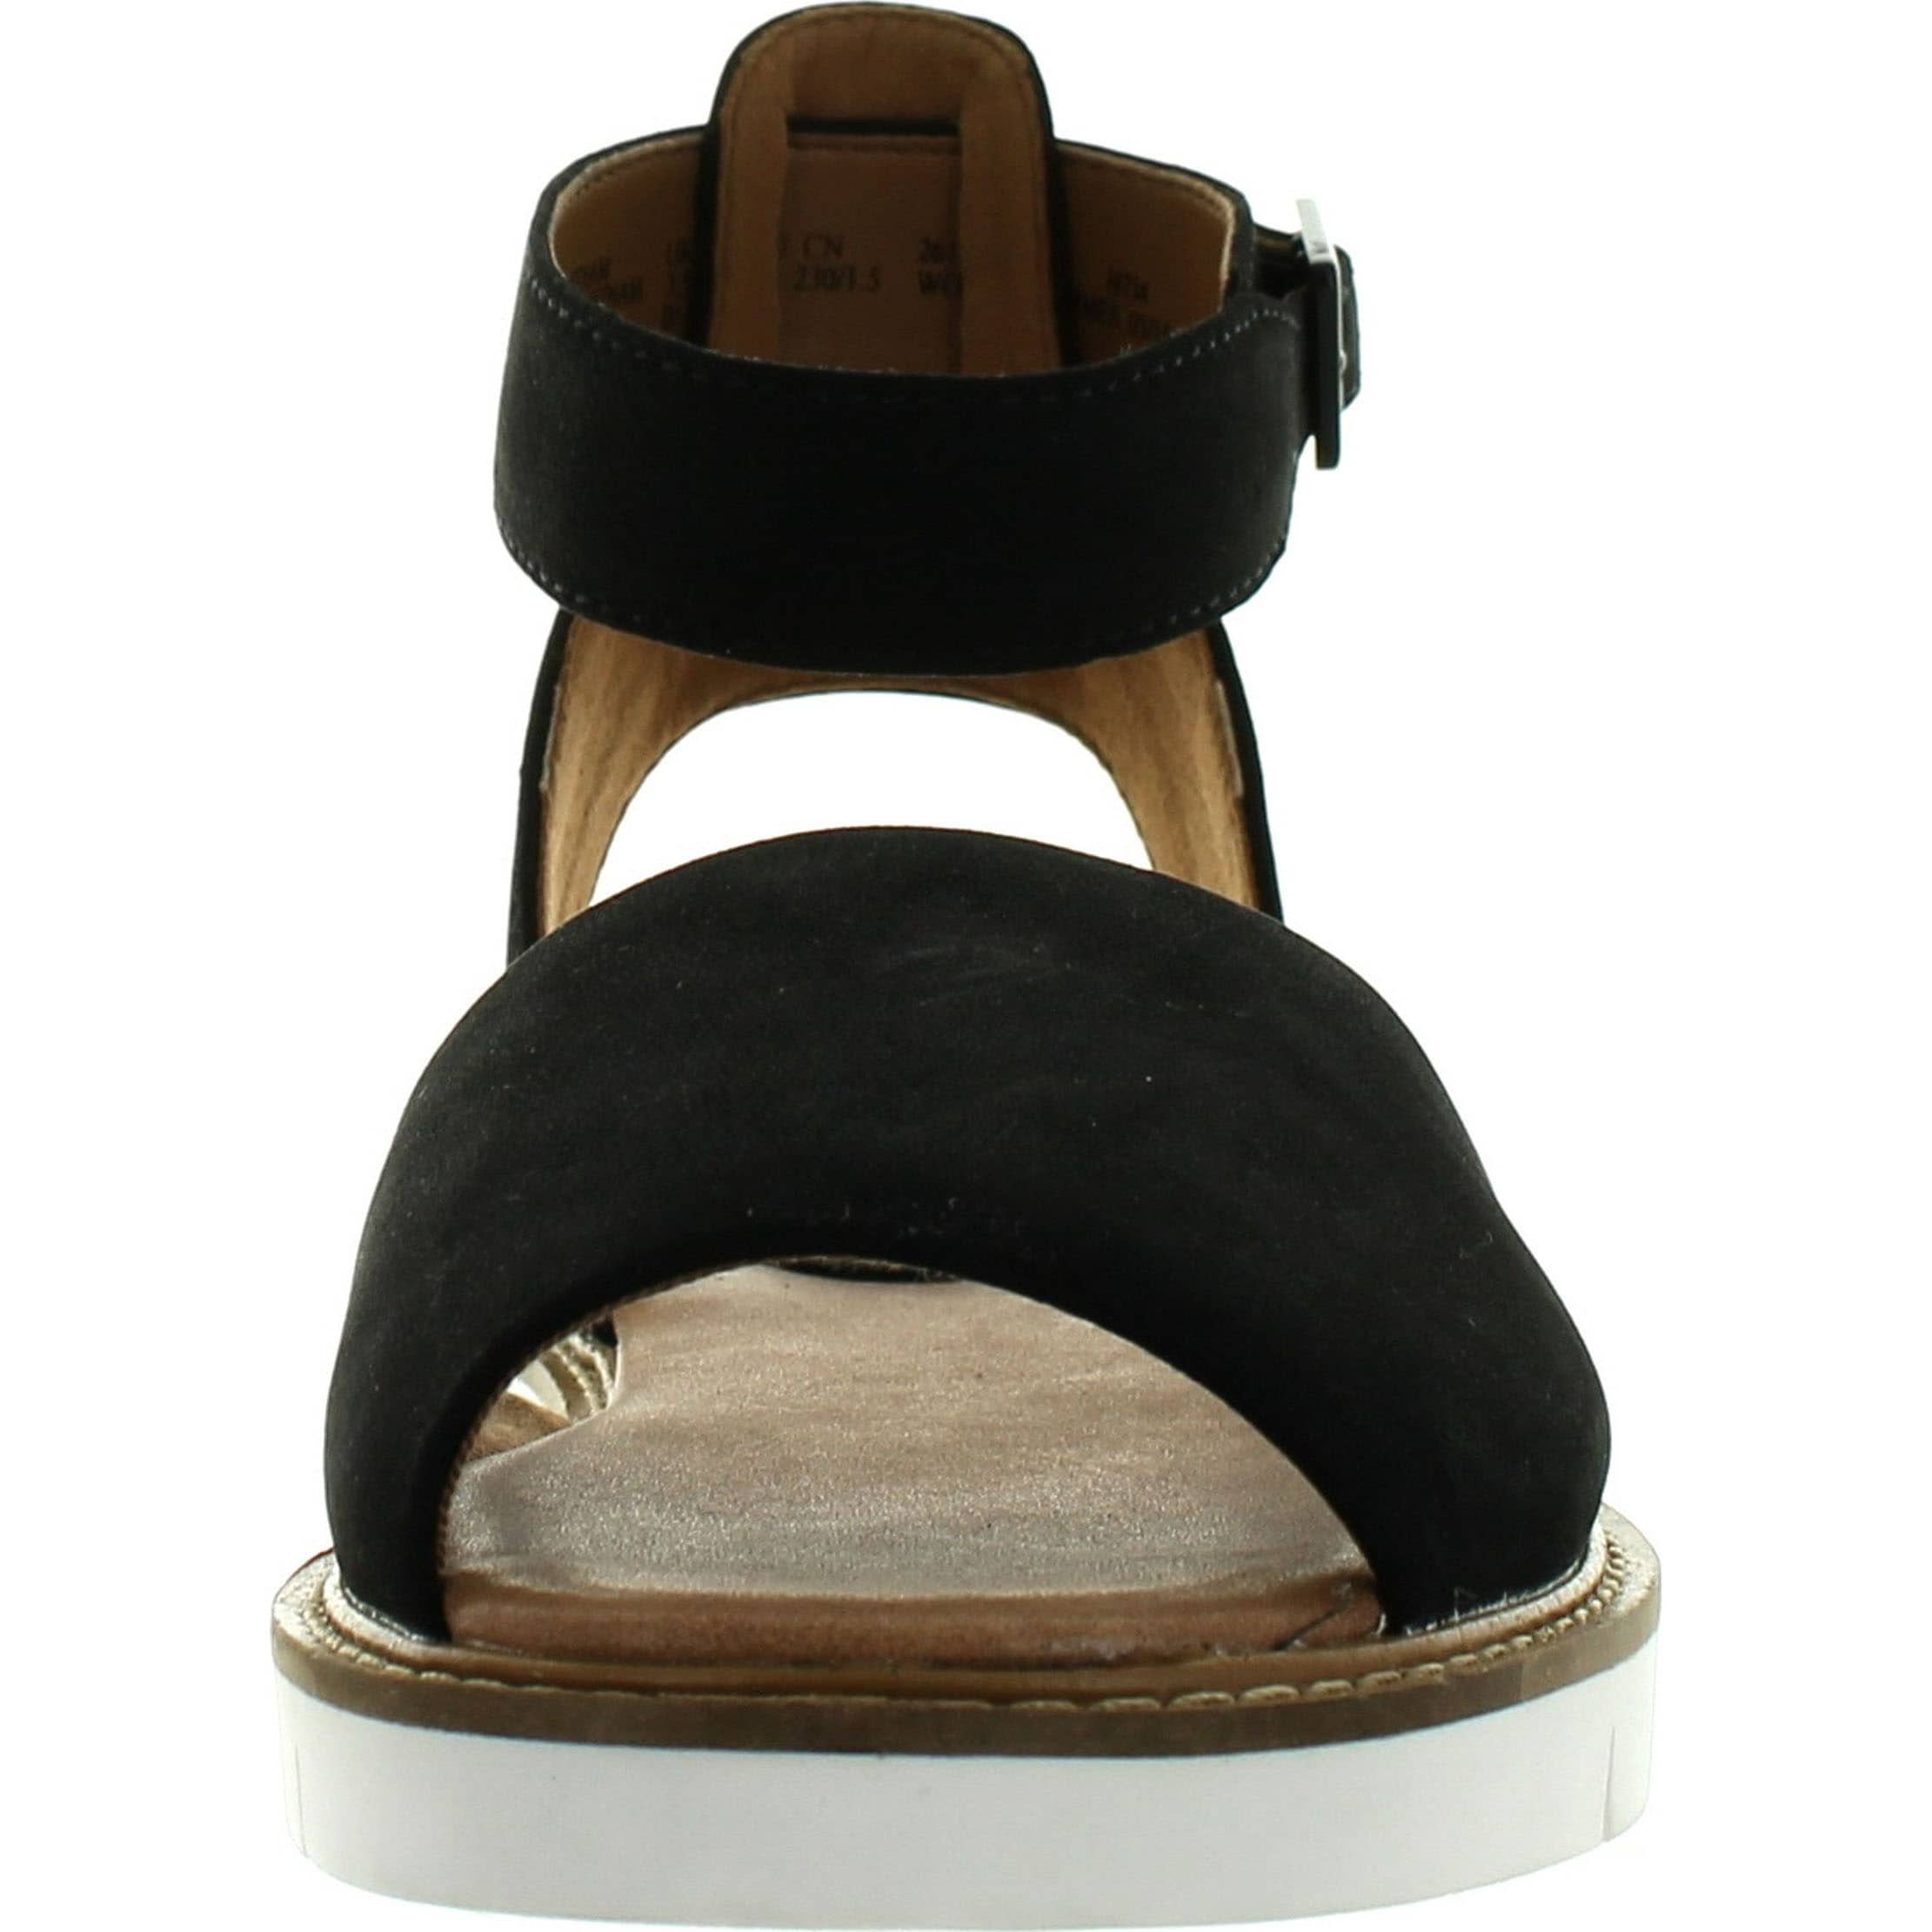 032093f2d927 Shop Clarks Womens Lydie Hala Sandals - Free Shipping Today - Overstock -  14384274